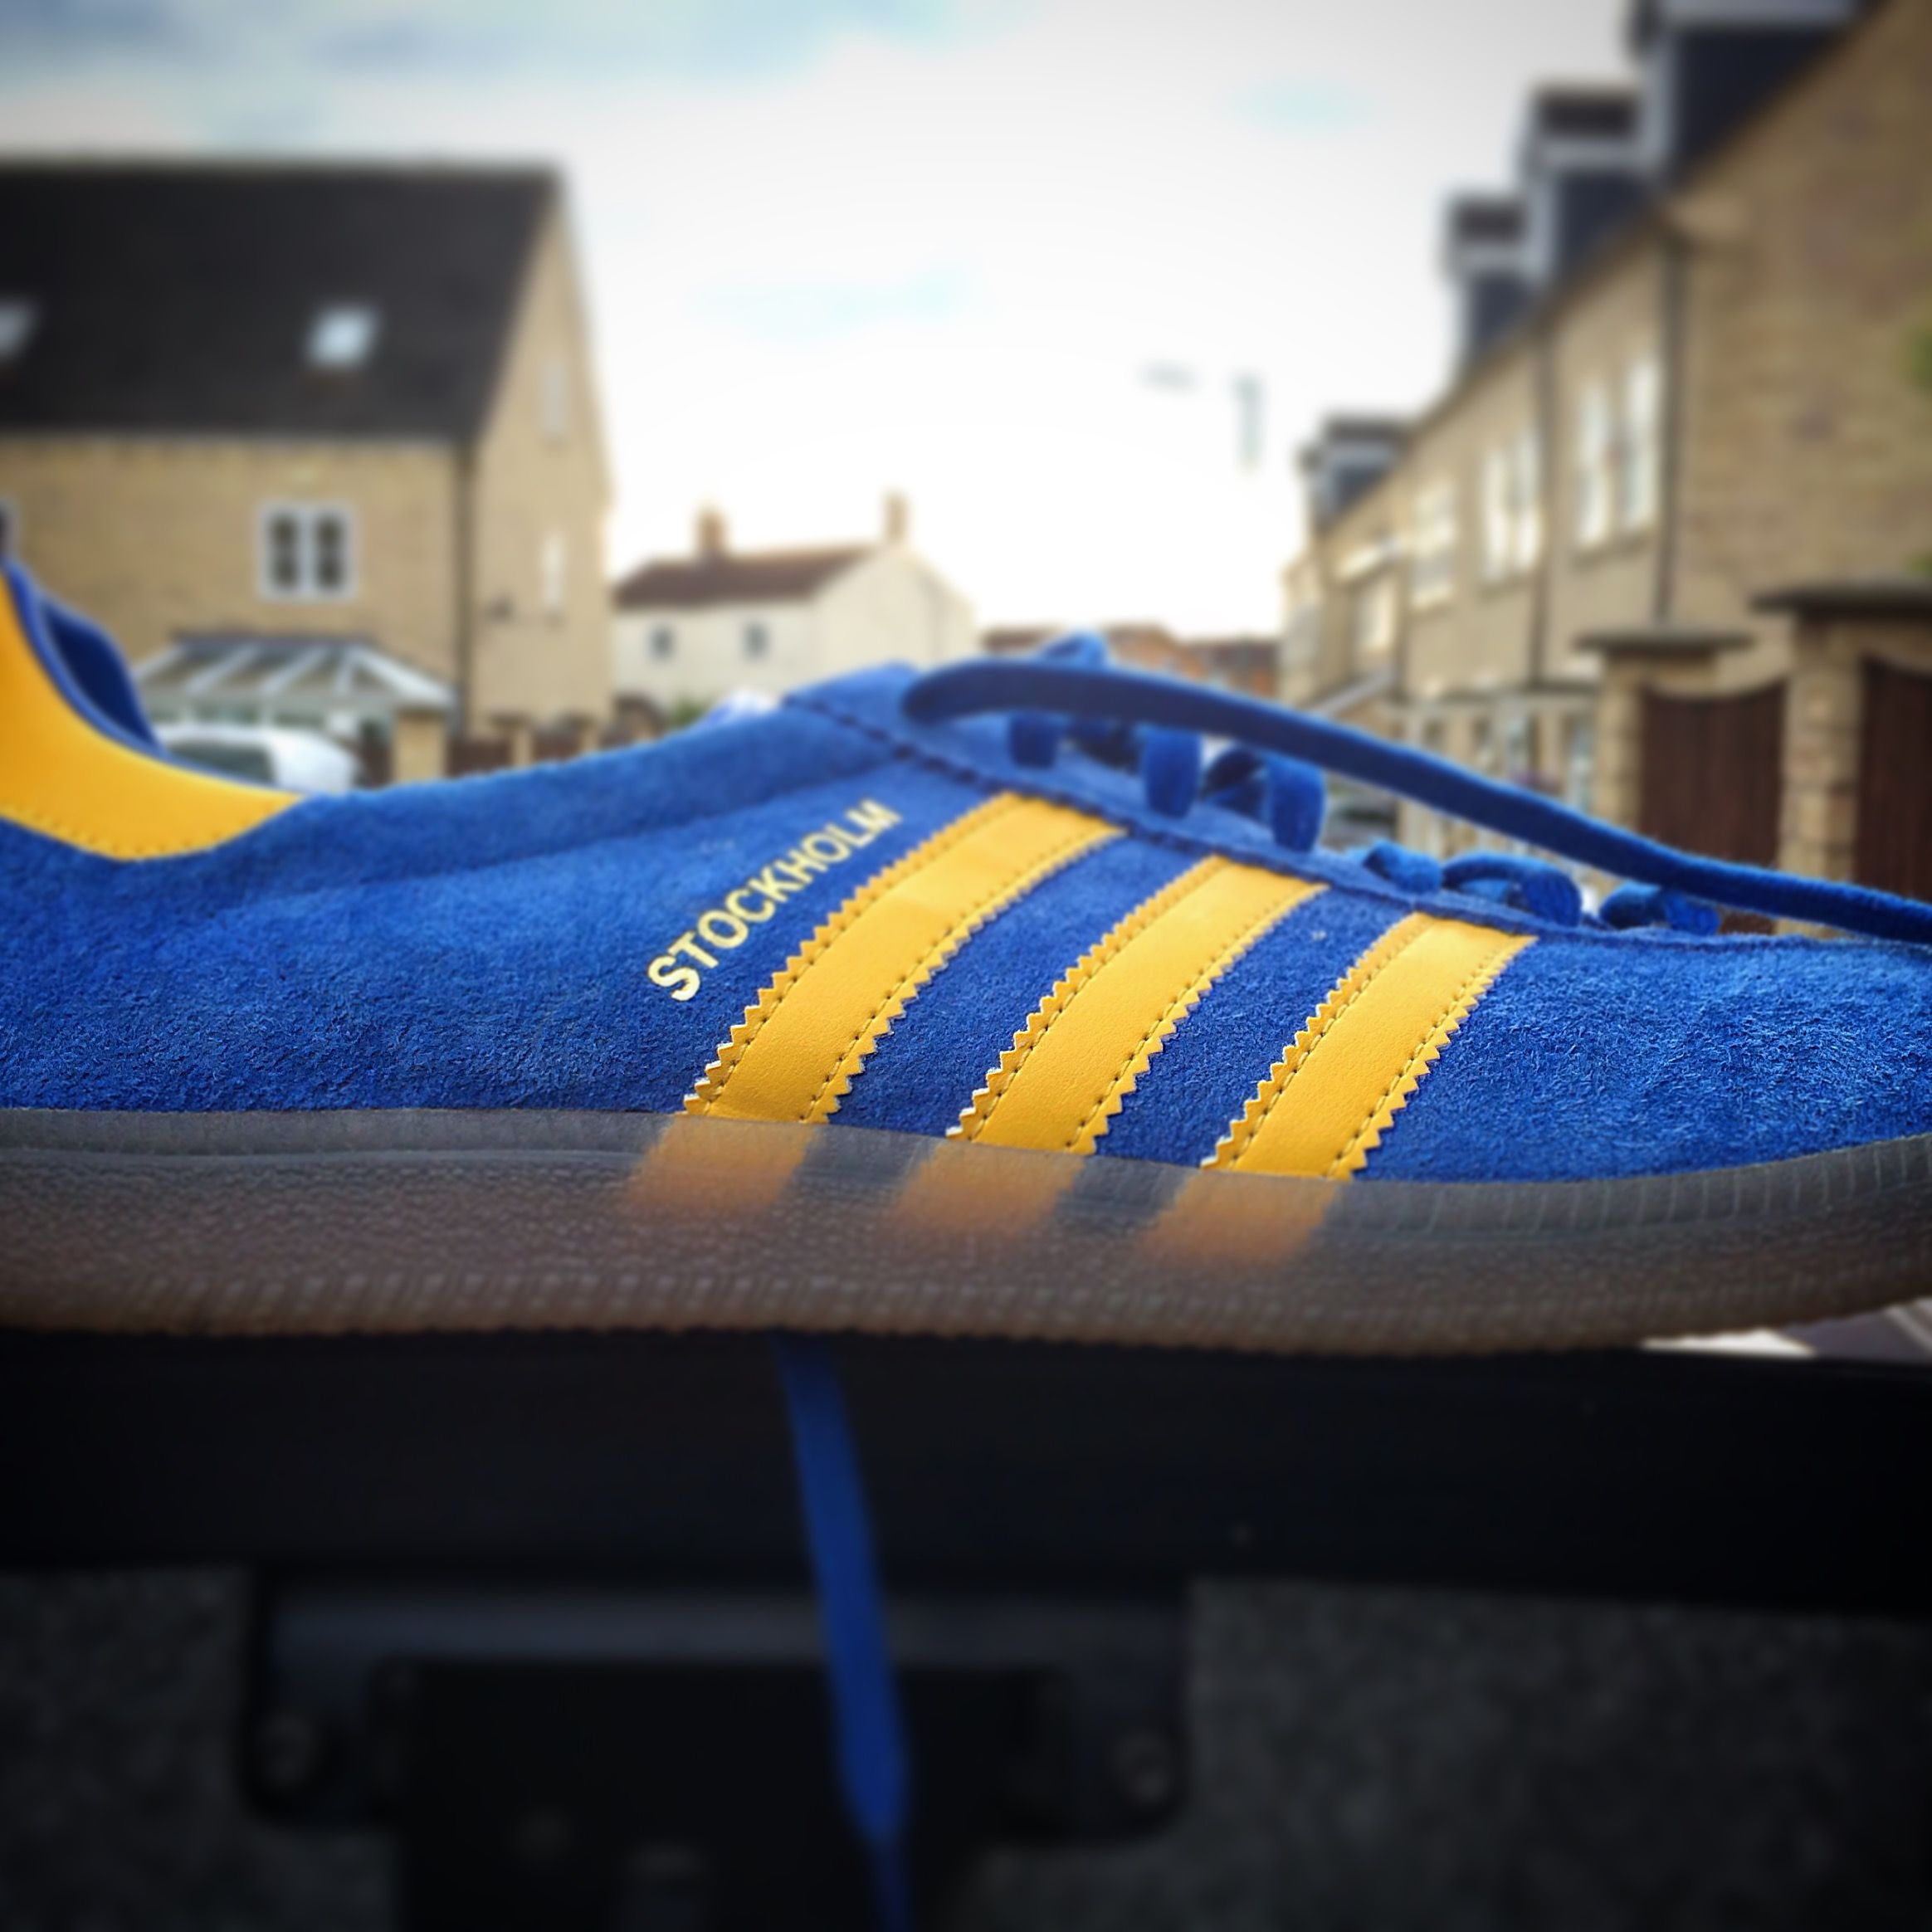 low priced 58a70 51f7c Adidas Stockholm 2008 release (translucent outsold)